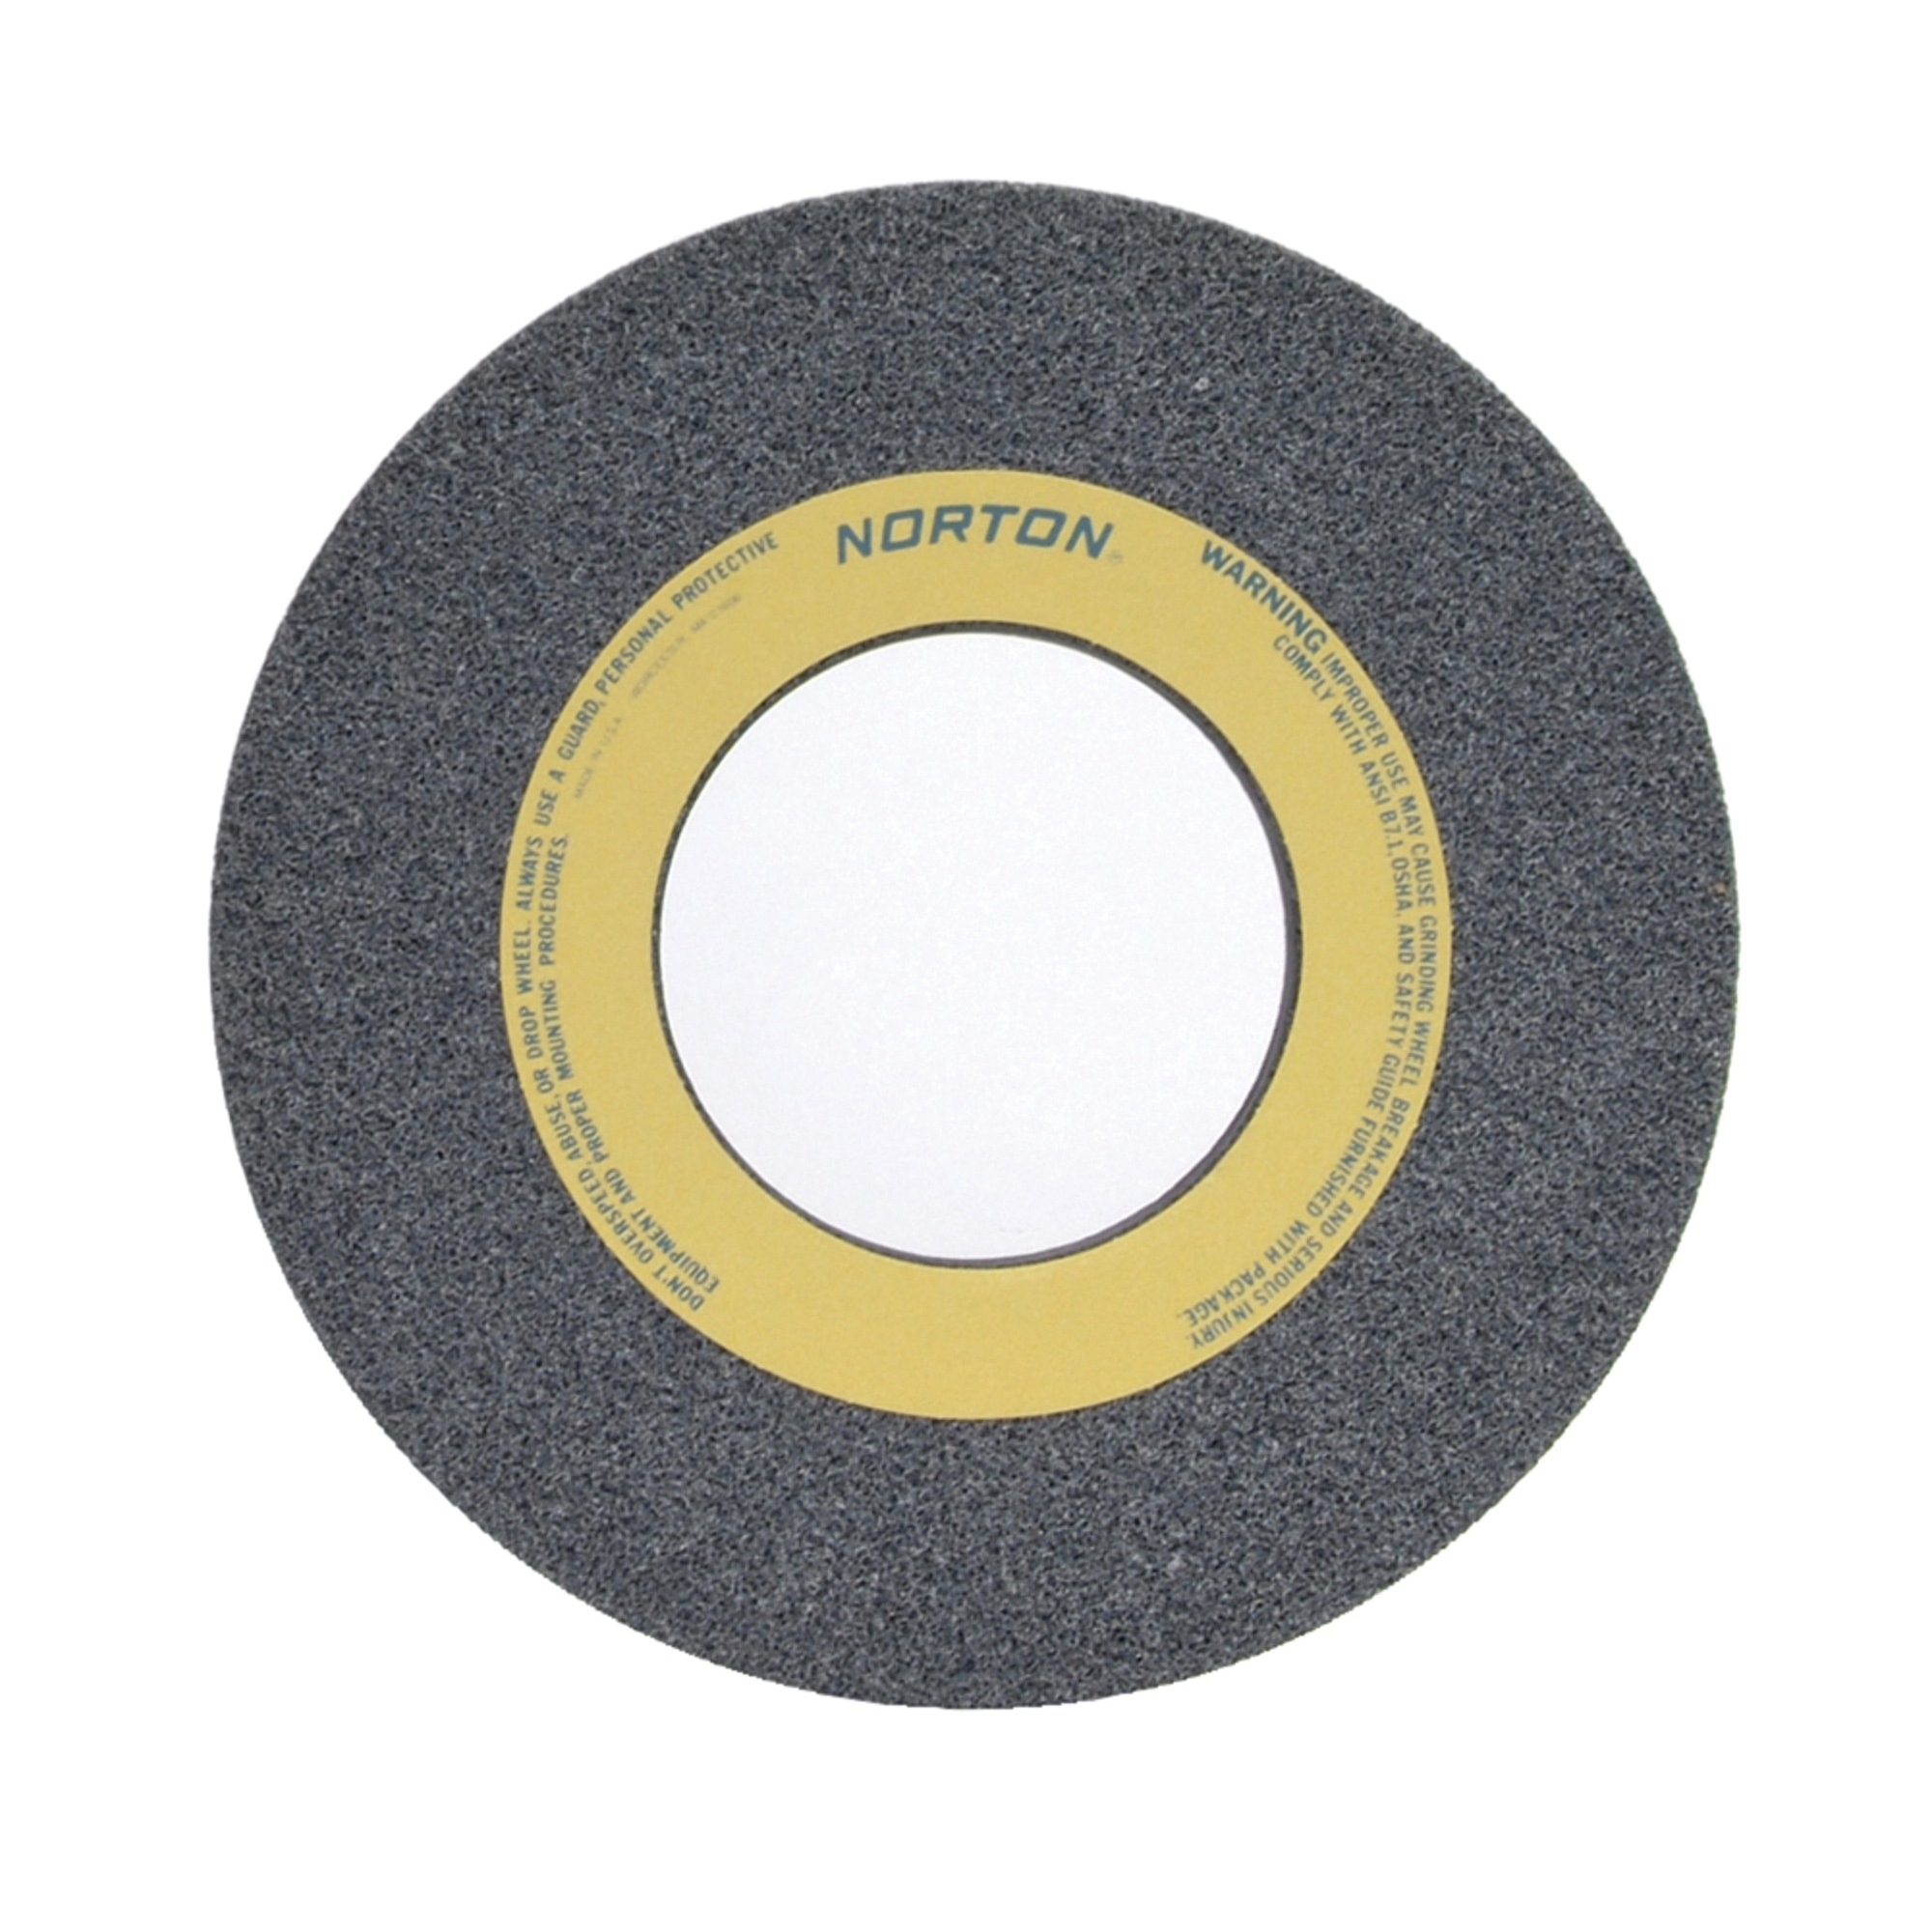 Norton® 66253306790 32AA Straight Toolroom Wheel, 14 in Dia x 1-1/2 in THK, 5 in Center Hole, 46 Grit, Aluminum Oxide Abrasive